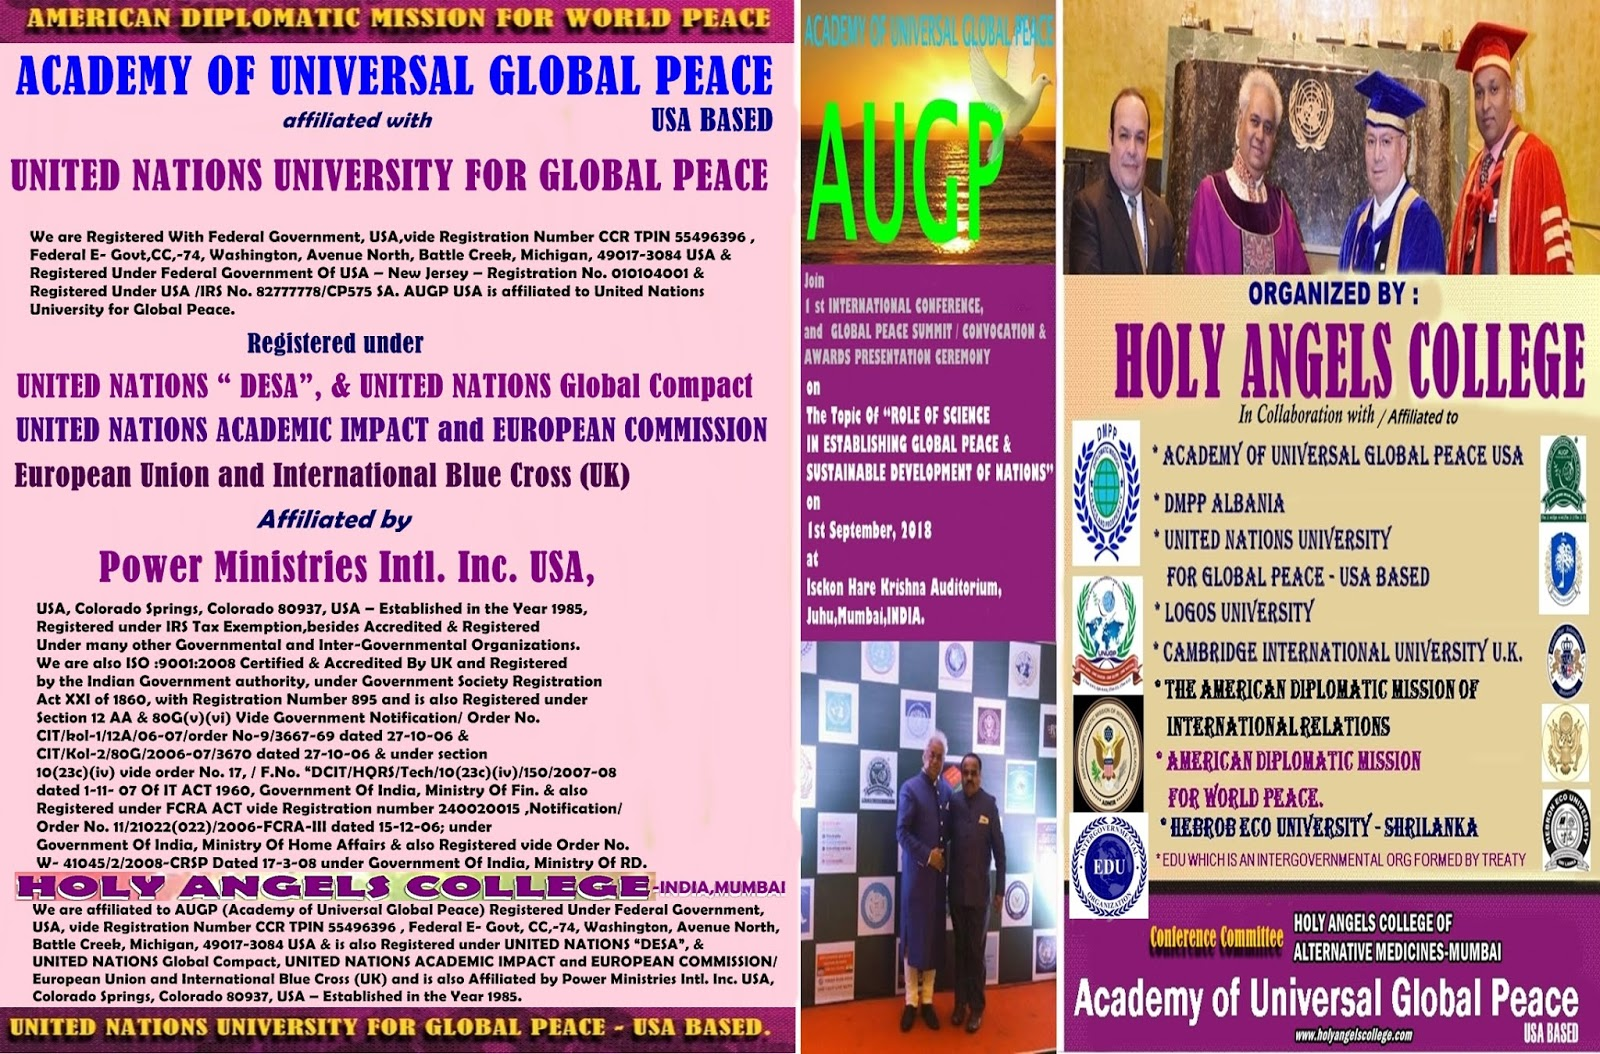 THE UNITED NATIONS UNIVERSITY FOR GLOBAL PEACE – USA